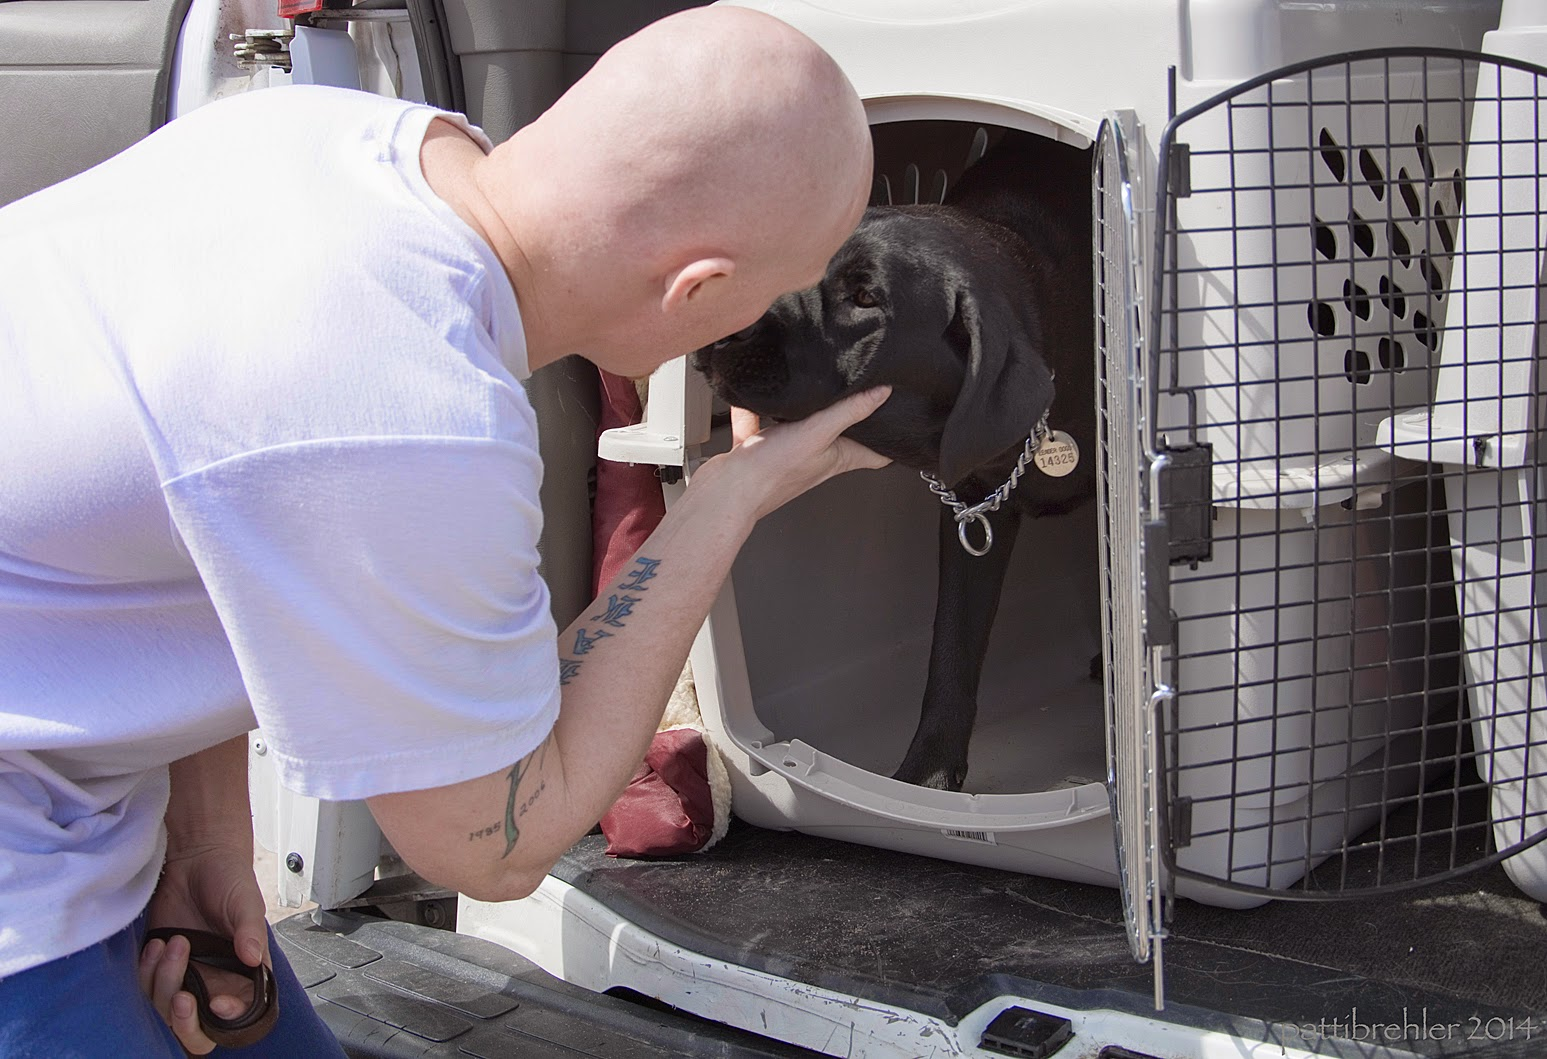 The bald man in a white t-shirt is holding the chin of a black lab and pressing his face toward the lab. The lab is inside of an airline dog crate, facing out, with the wire door open wide.